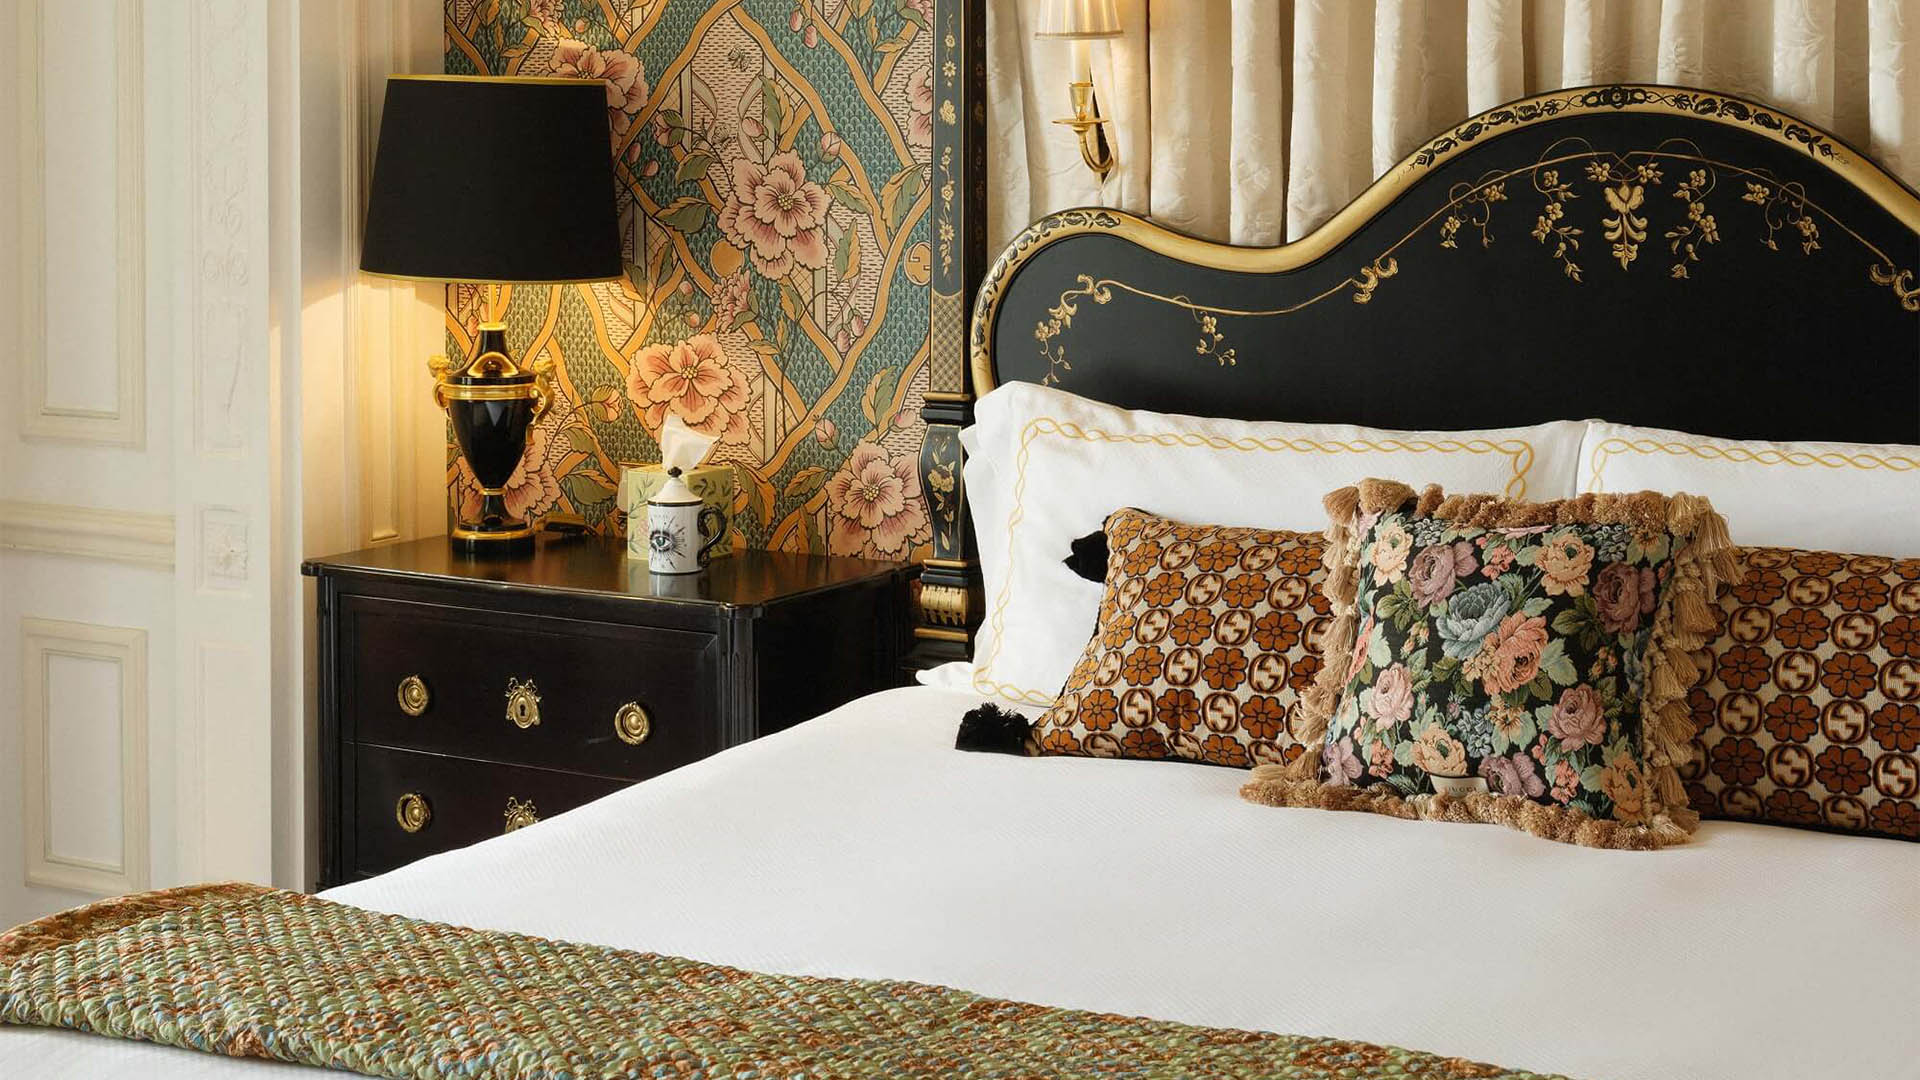 The Savoy London - The Royal Suite by Gucci